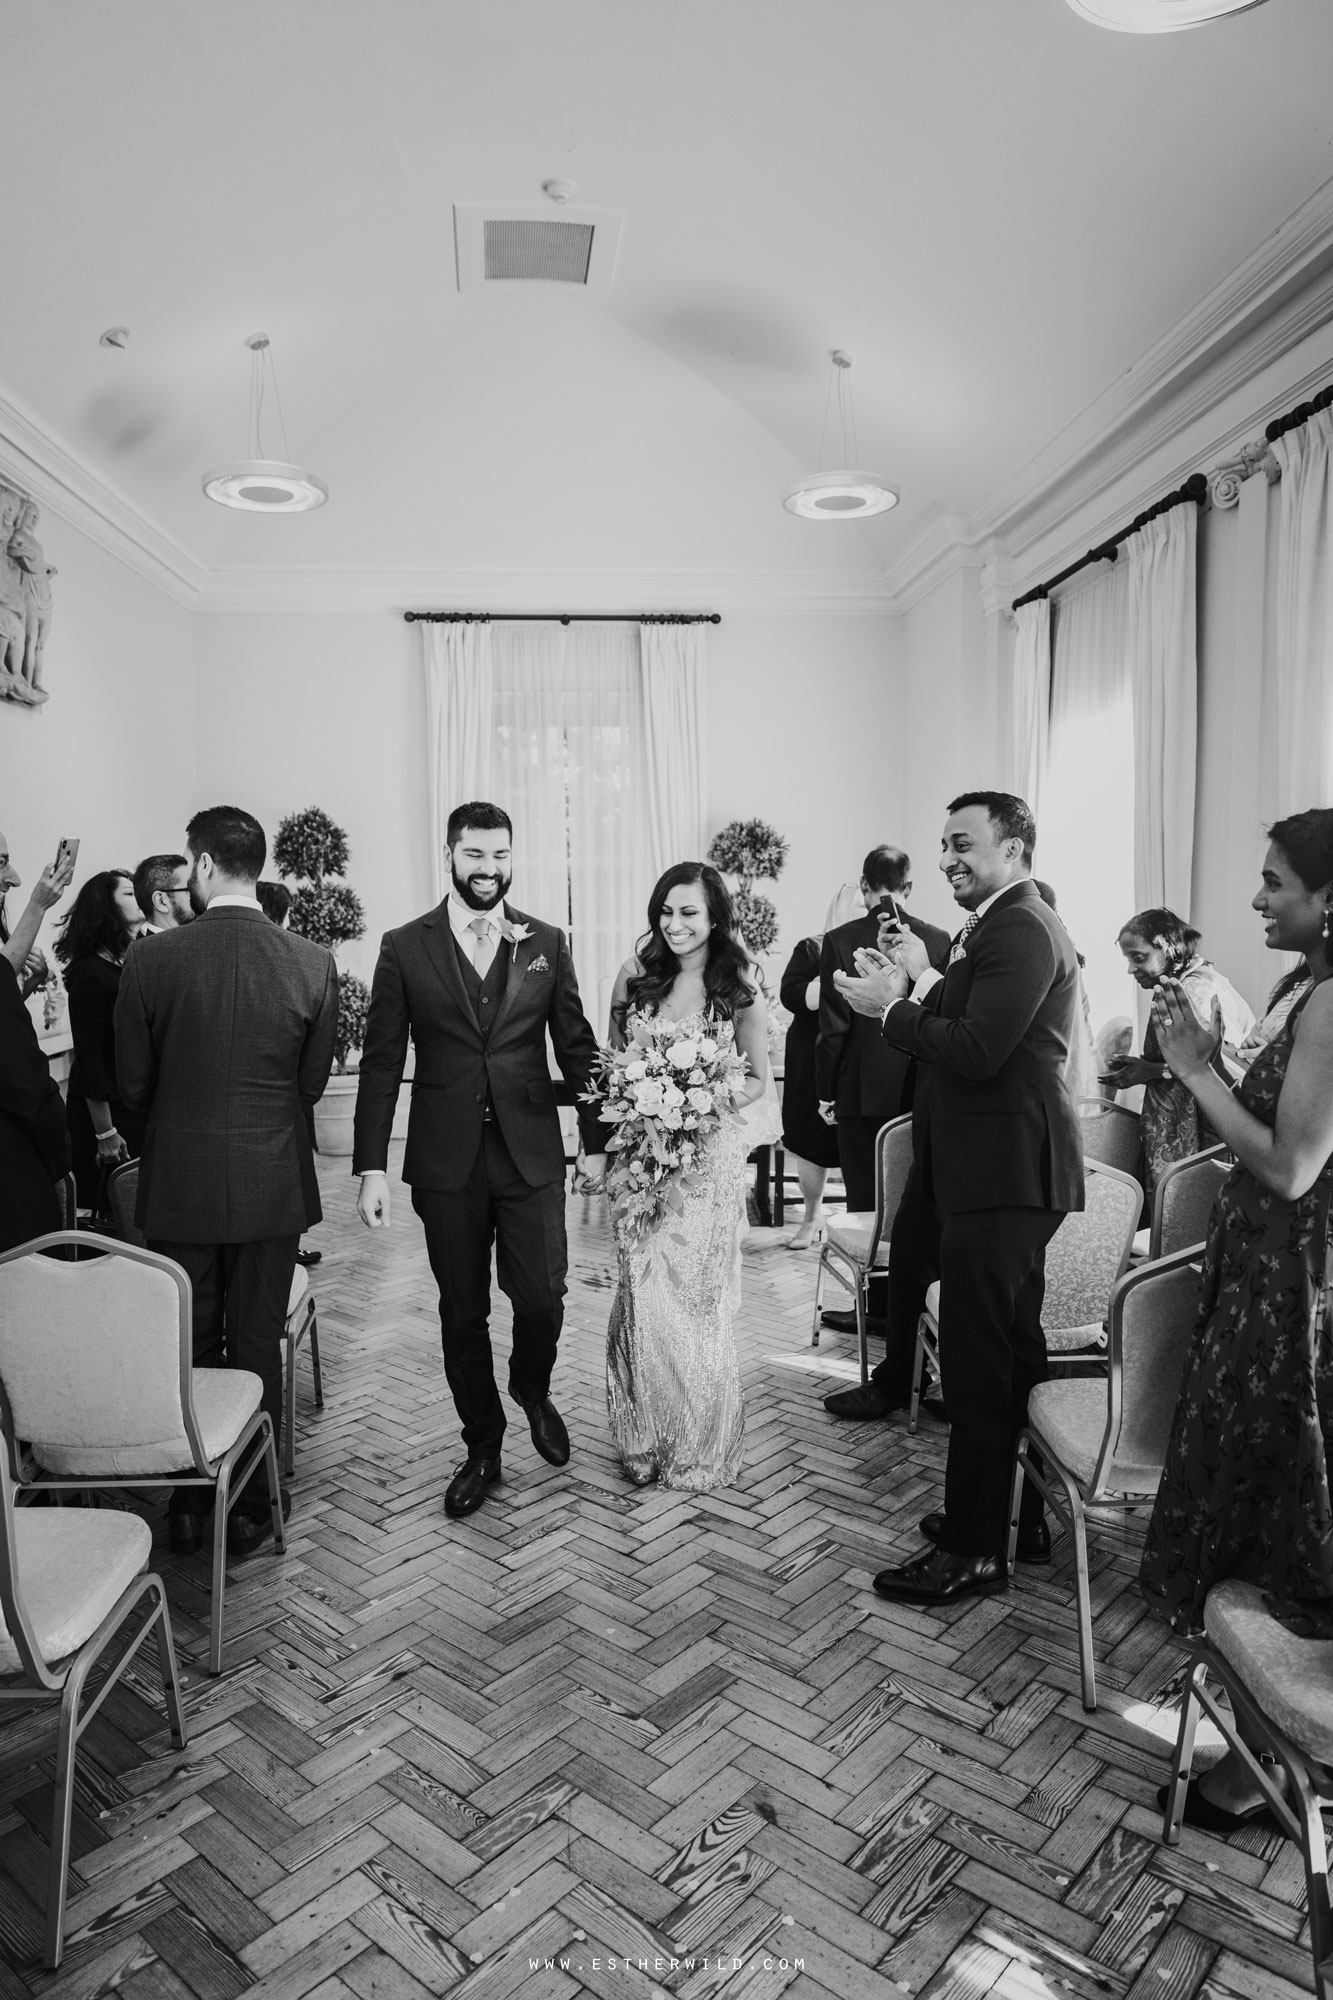 Twickenham_Registry_Office_London_Wedding_Ceremony_Esther_Wild_Photographer_IMG_0545.jpg